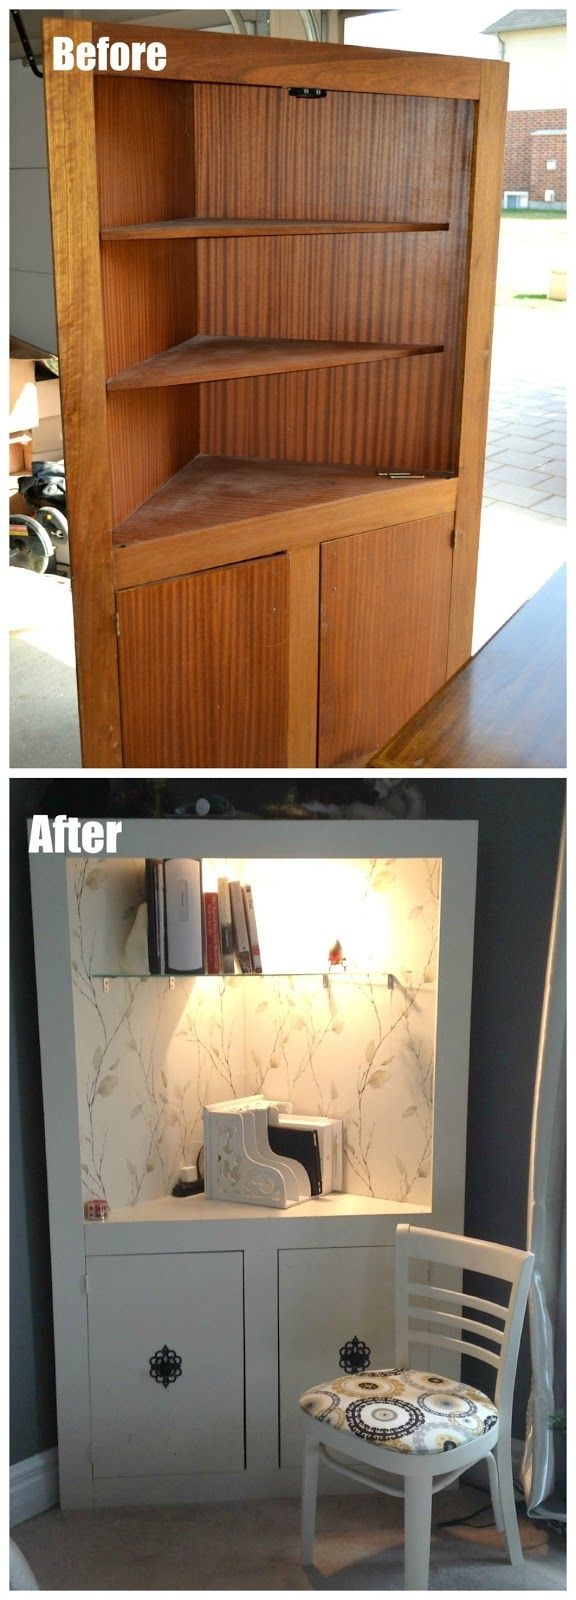 Diy Refinished And Painted Cabinet Reviews: Corner Desk/Charging Station